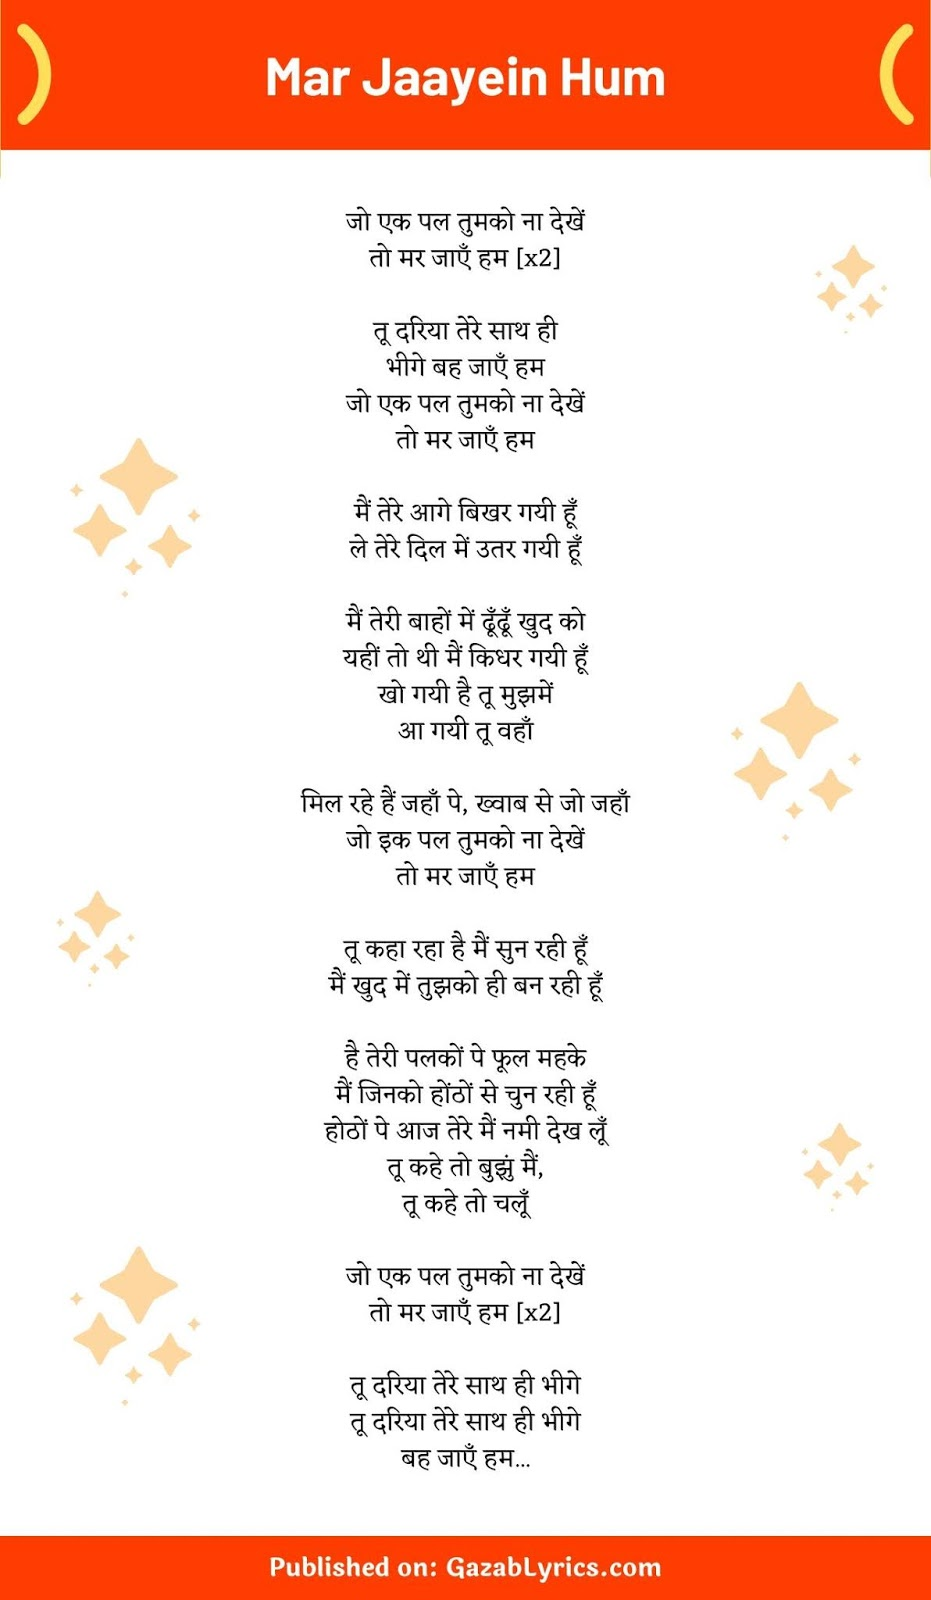 Mar Jaayein Hum song lyrics image